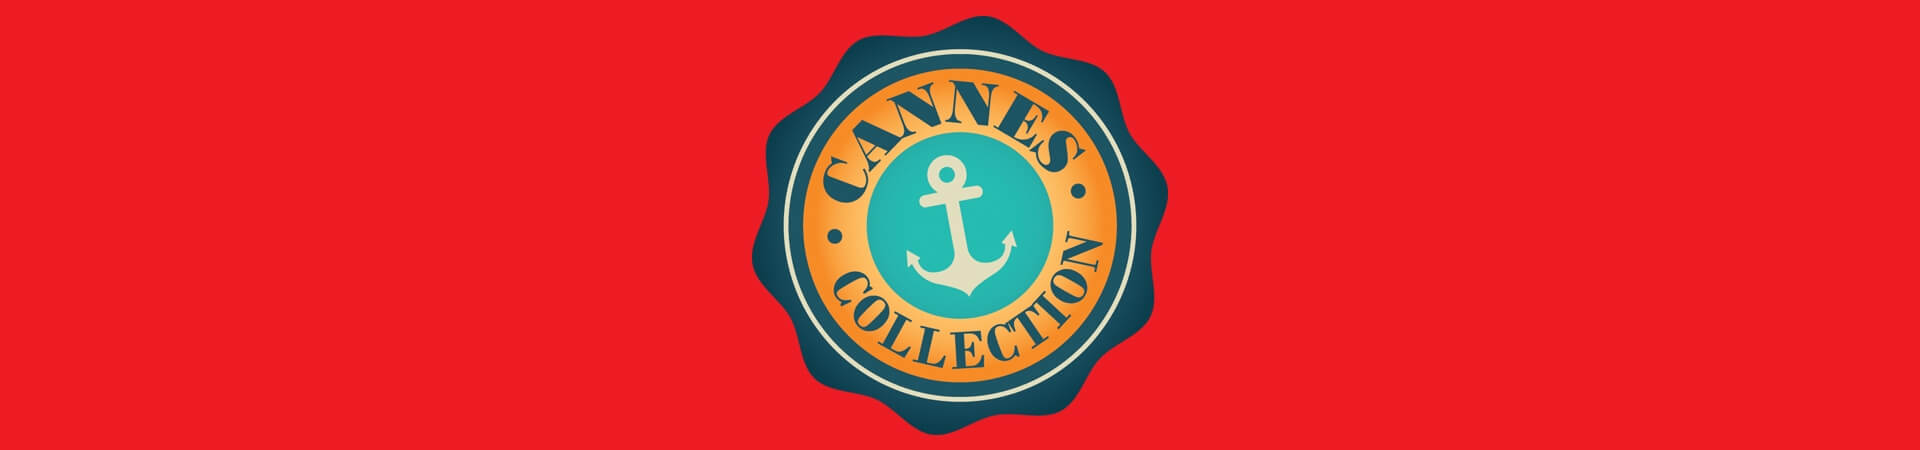 Cannes Collection